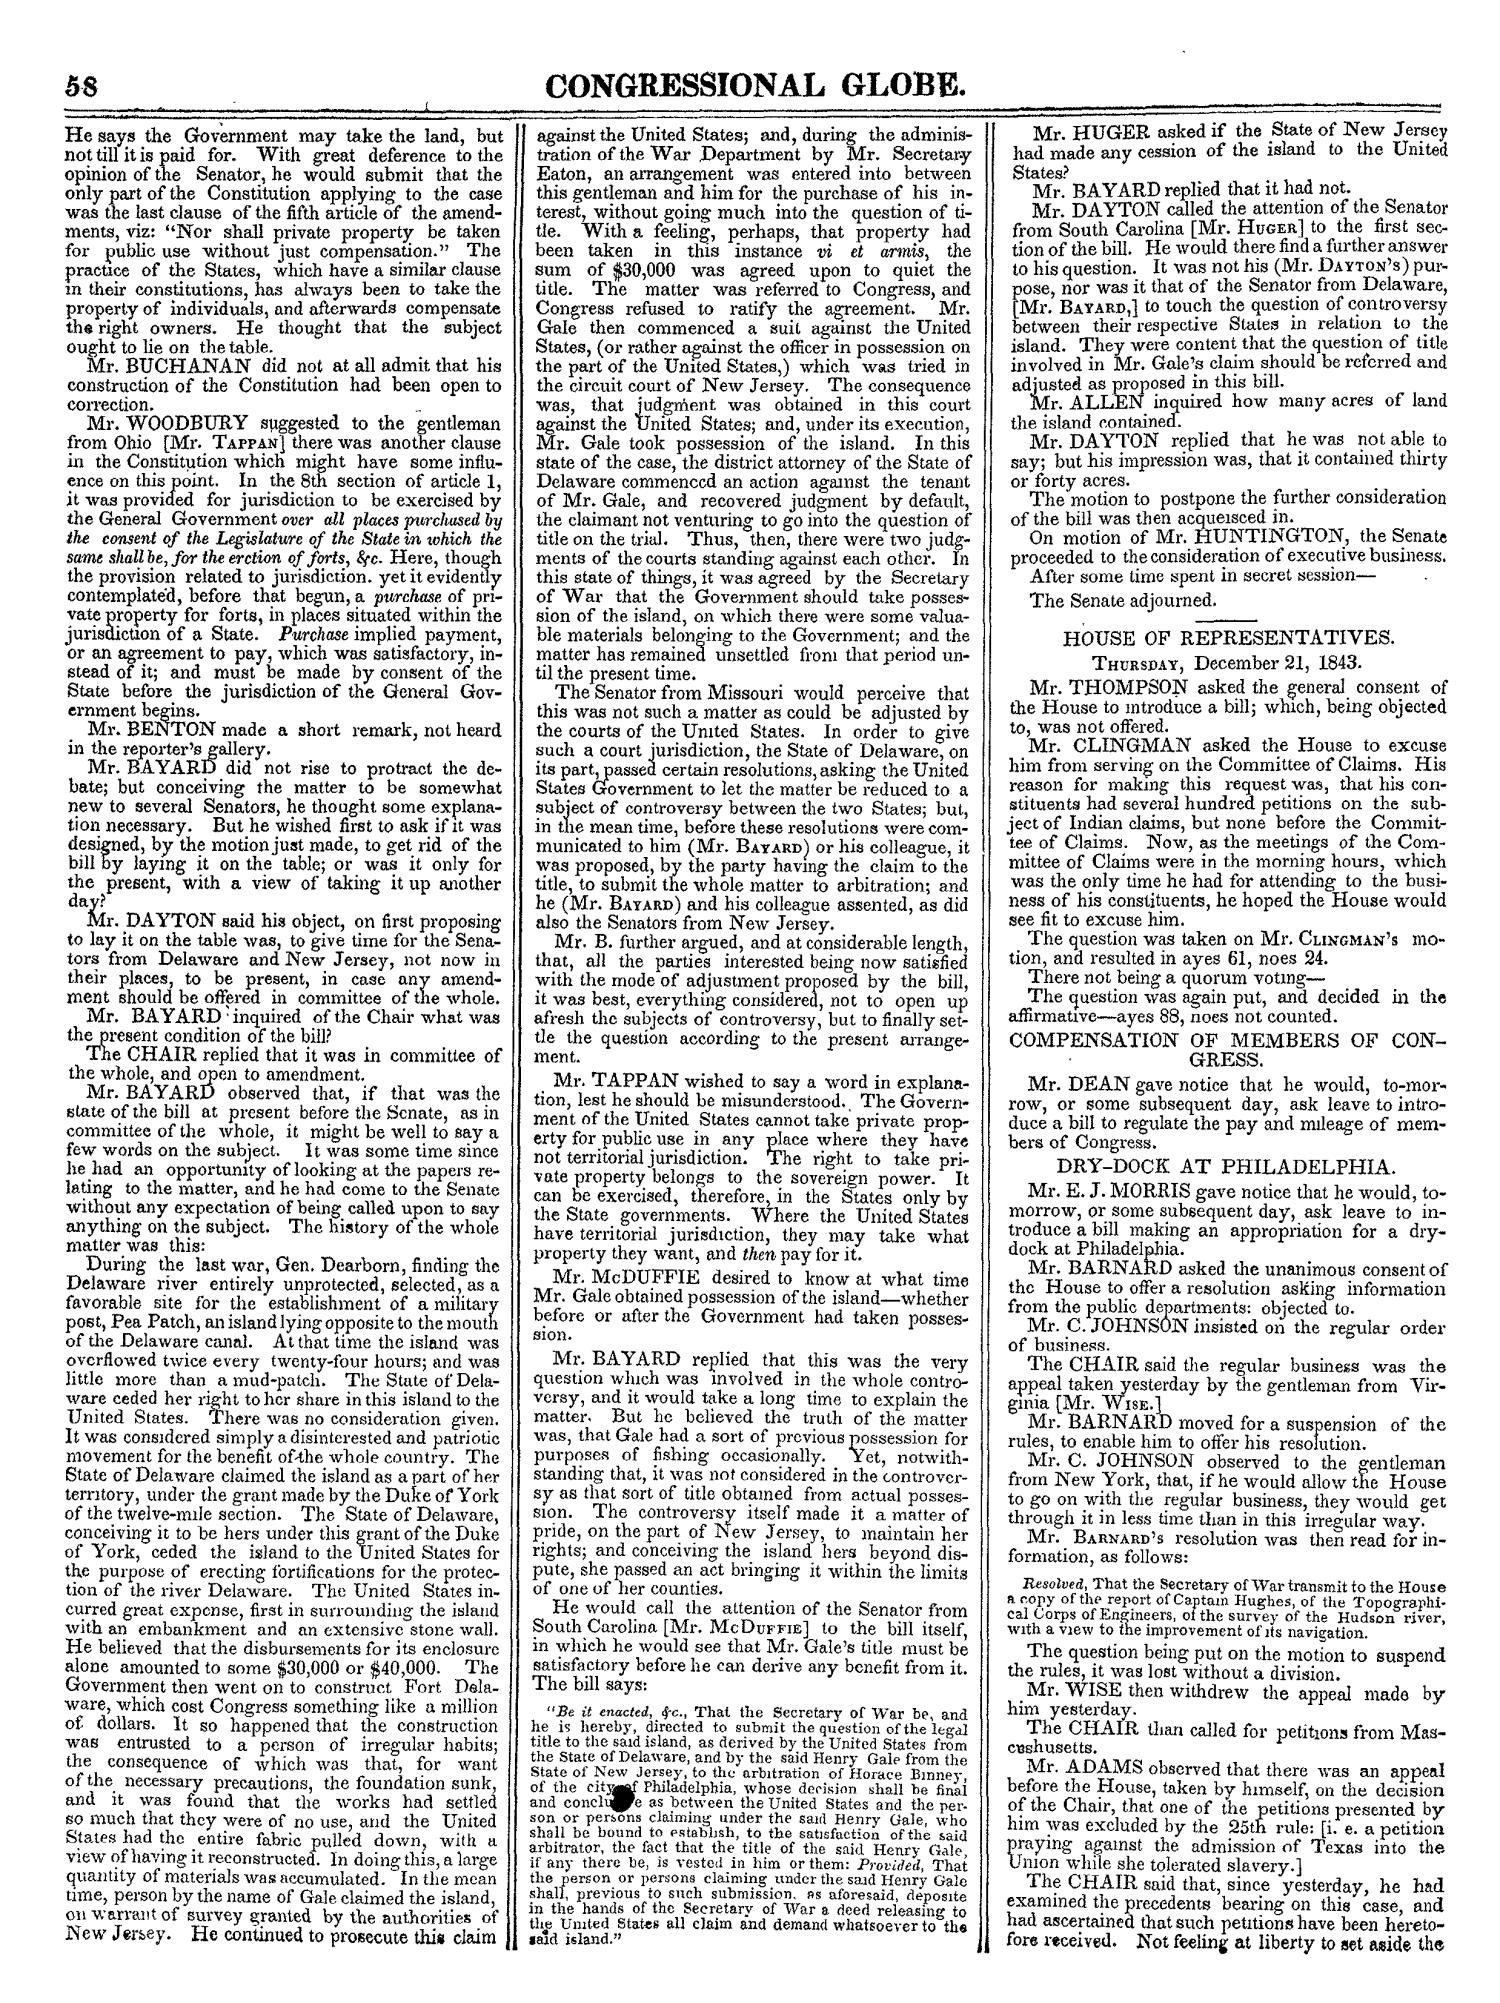 The Congressional Globe, Volume 13, Part 1: Twenty-Eighth Congress, First Session                                                                                                      58